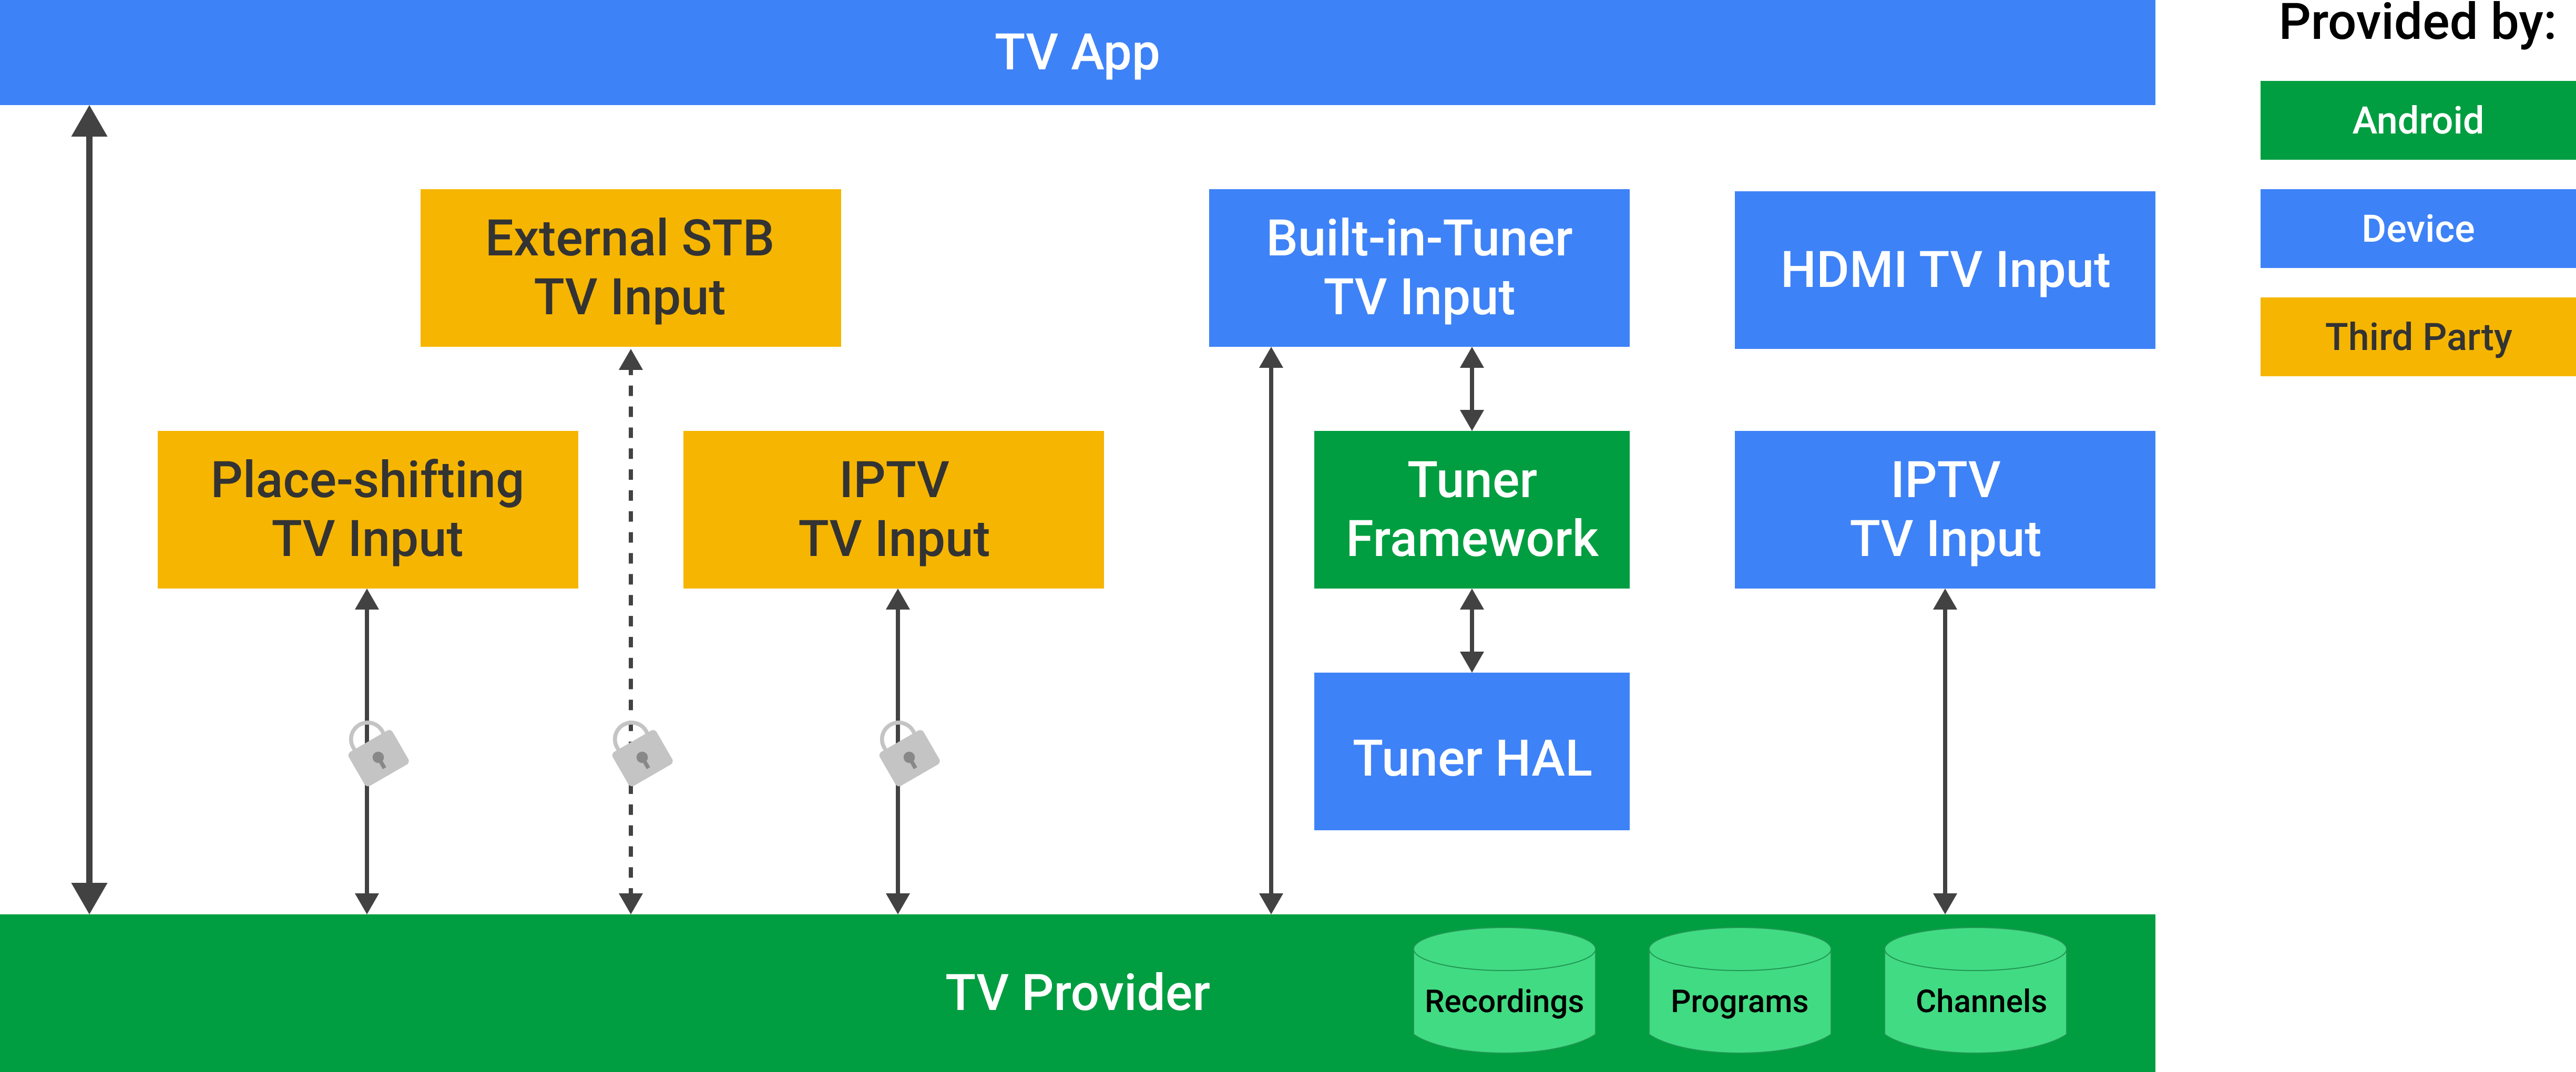 Android TV Provider